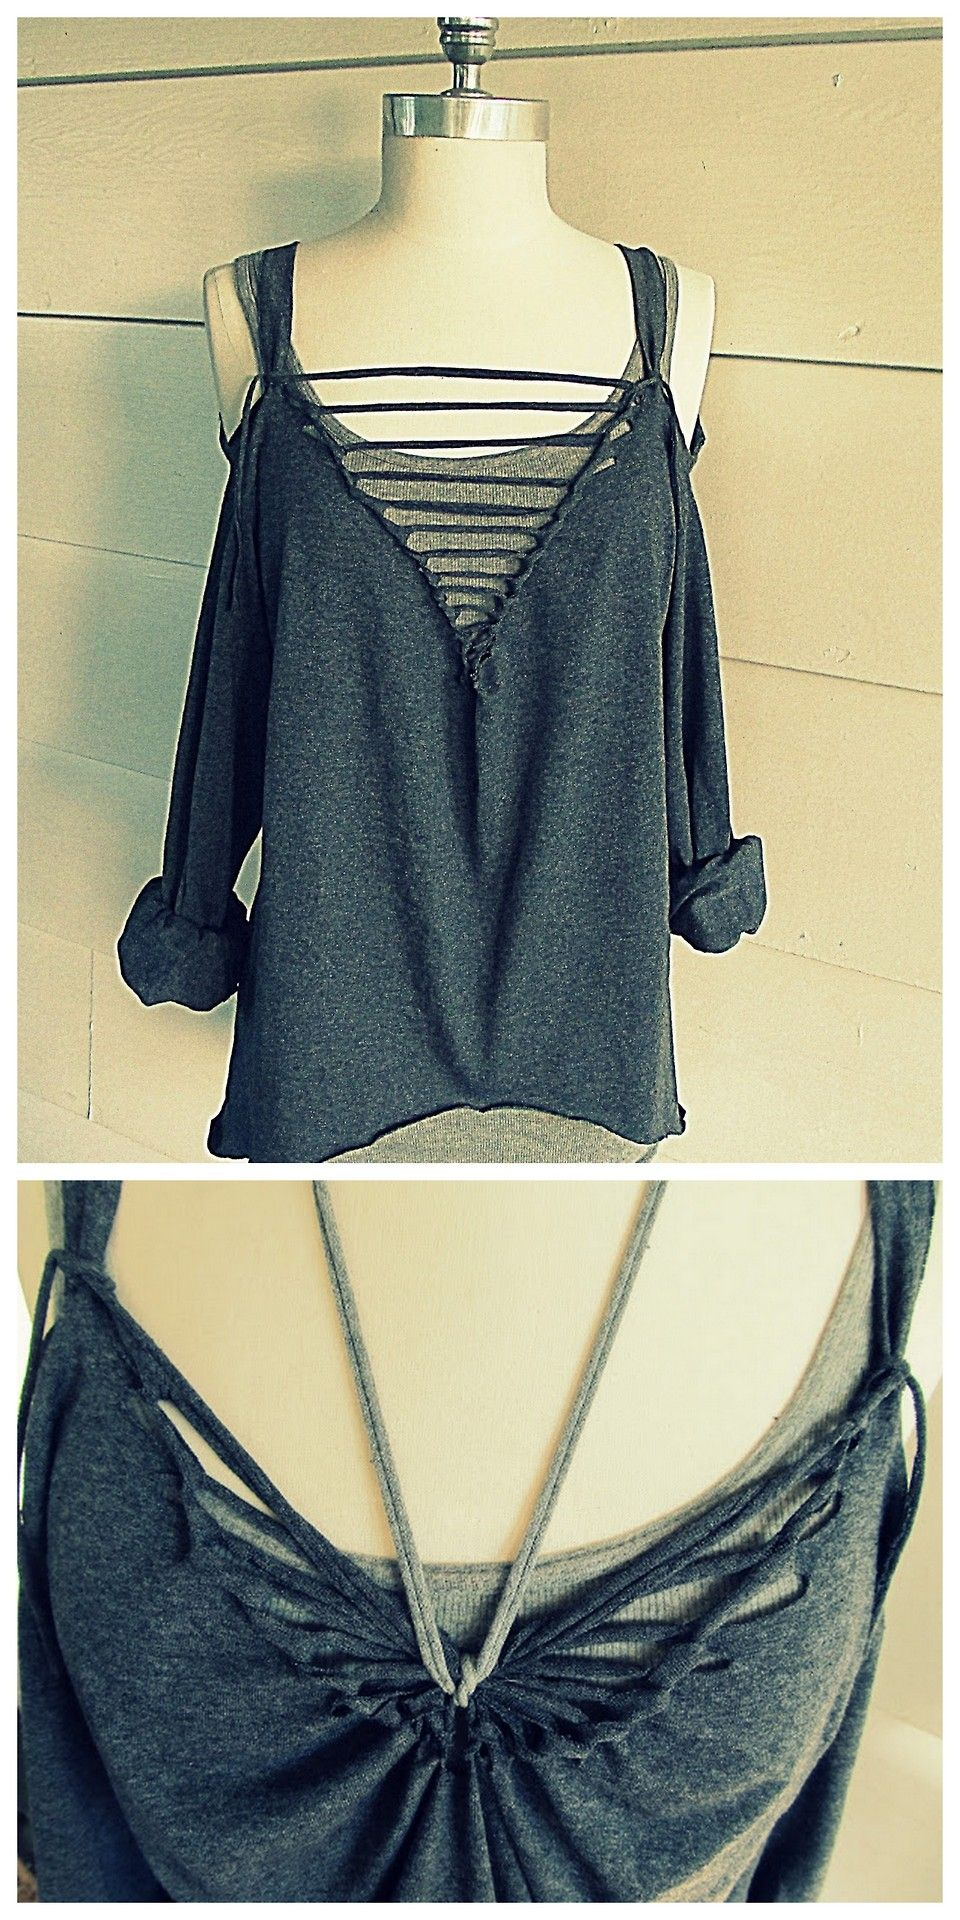 Diy No Sew Off The Shoulder Ladder Or Butterfly Tee Tutorial From Wobisobi Here As Usual